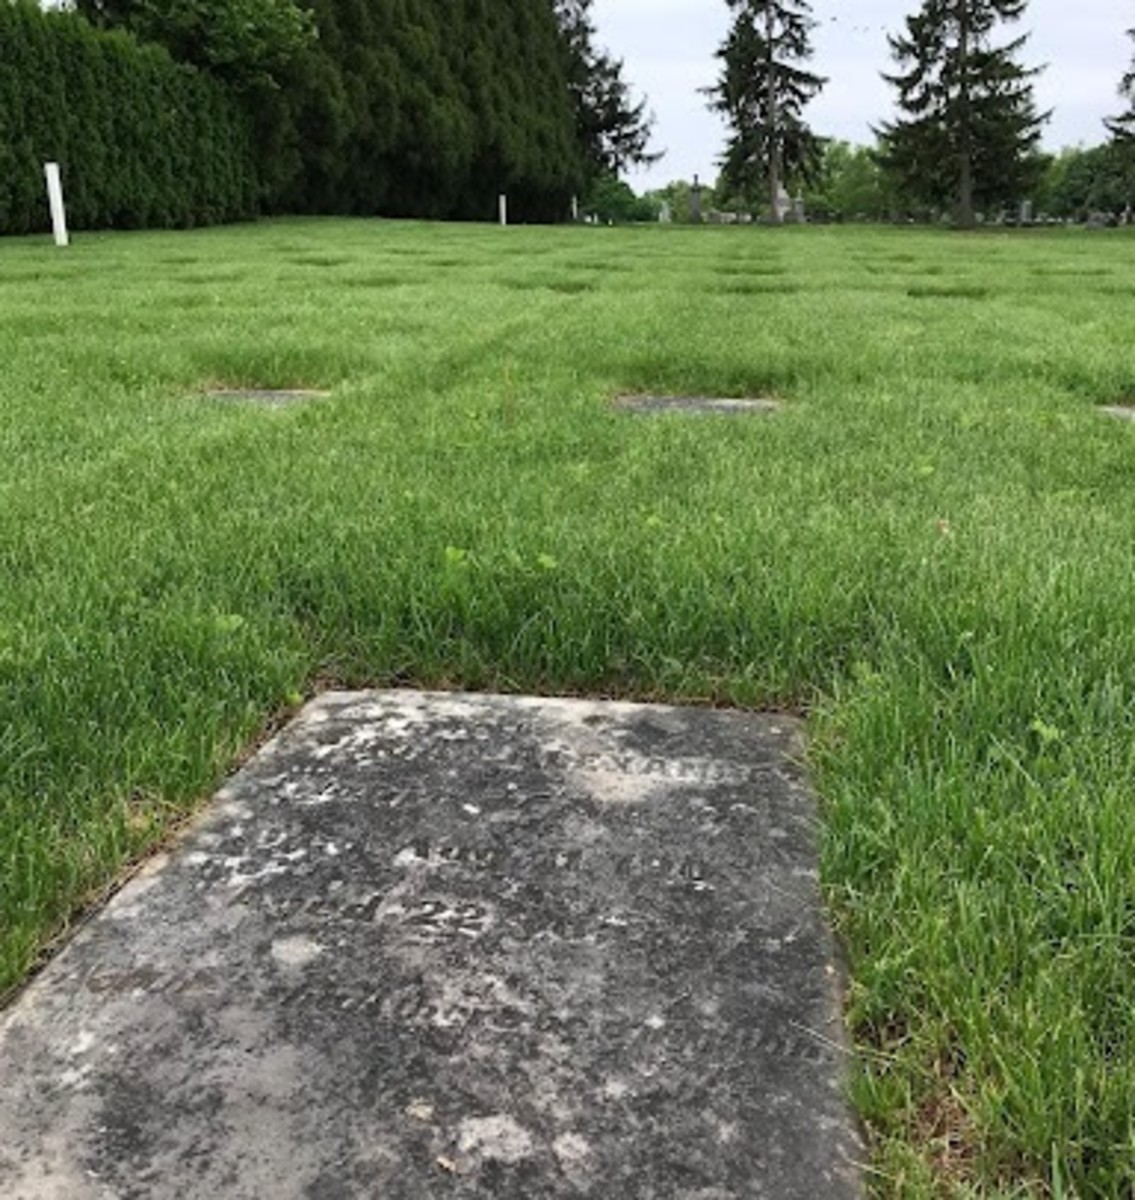 Ephraim Alexander, a Yup'ik student who died in 1905 while attending the Carlisle Indian Industrial School, was buried in Lititz, Pennsylvania. He was 22. (Photo courtesy of Louellyn White)